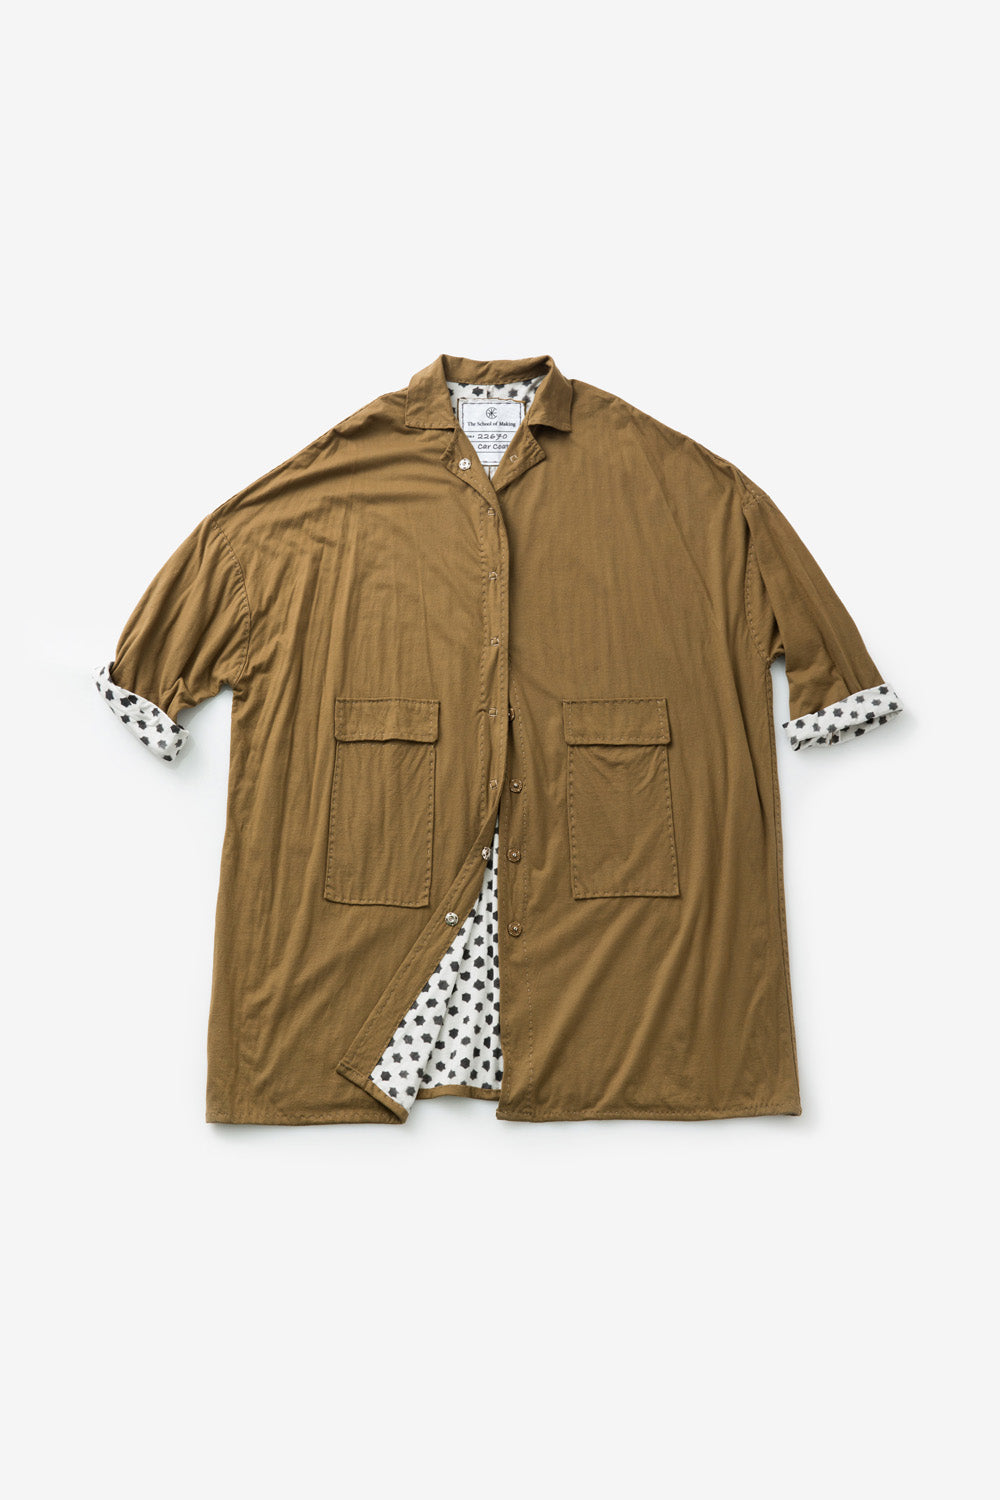 The School of Making The Faded Stars Car Coat Kit made with Organic Cotton and Hand-Sewn